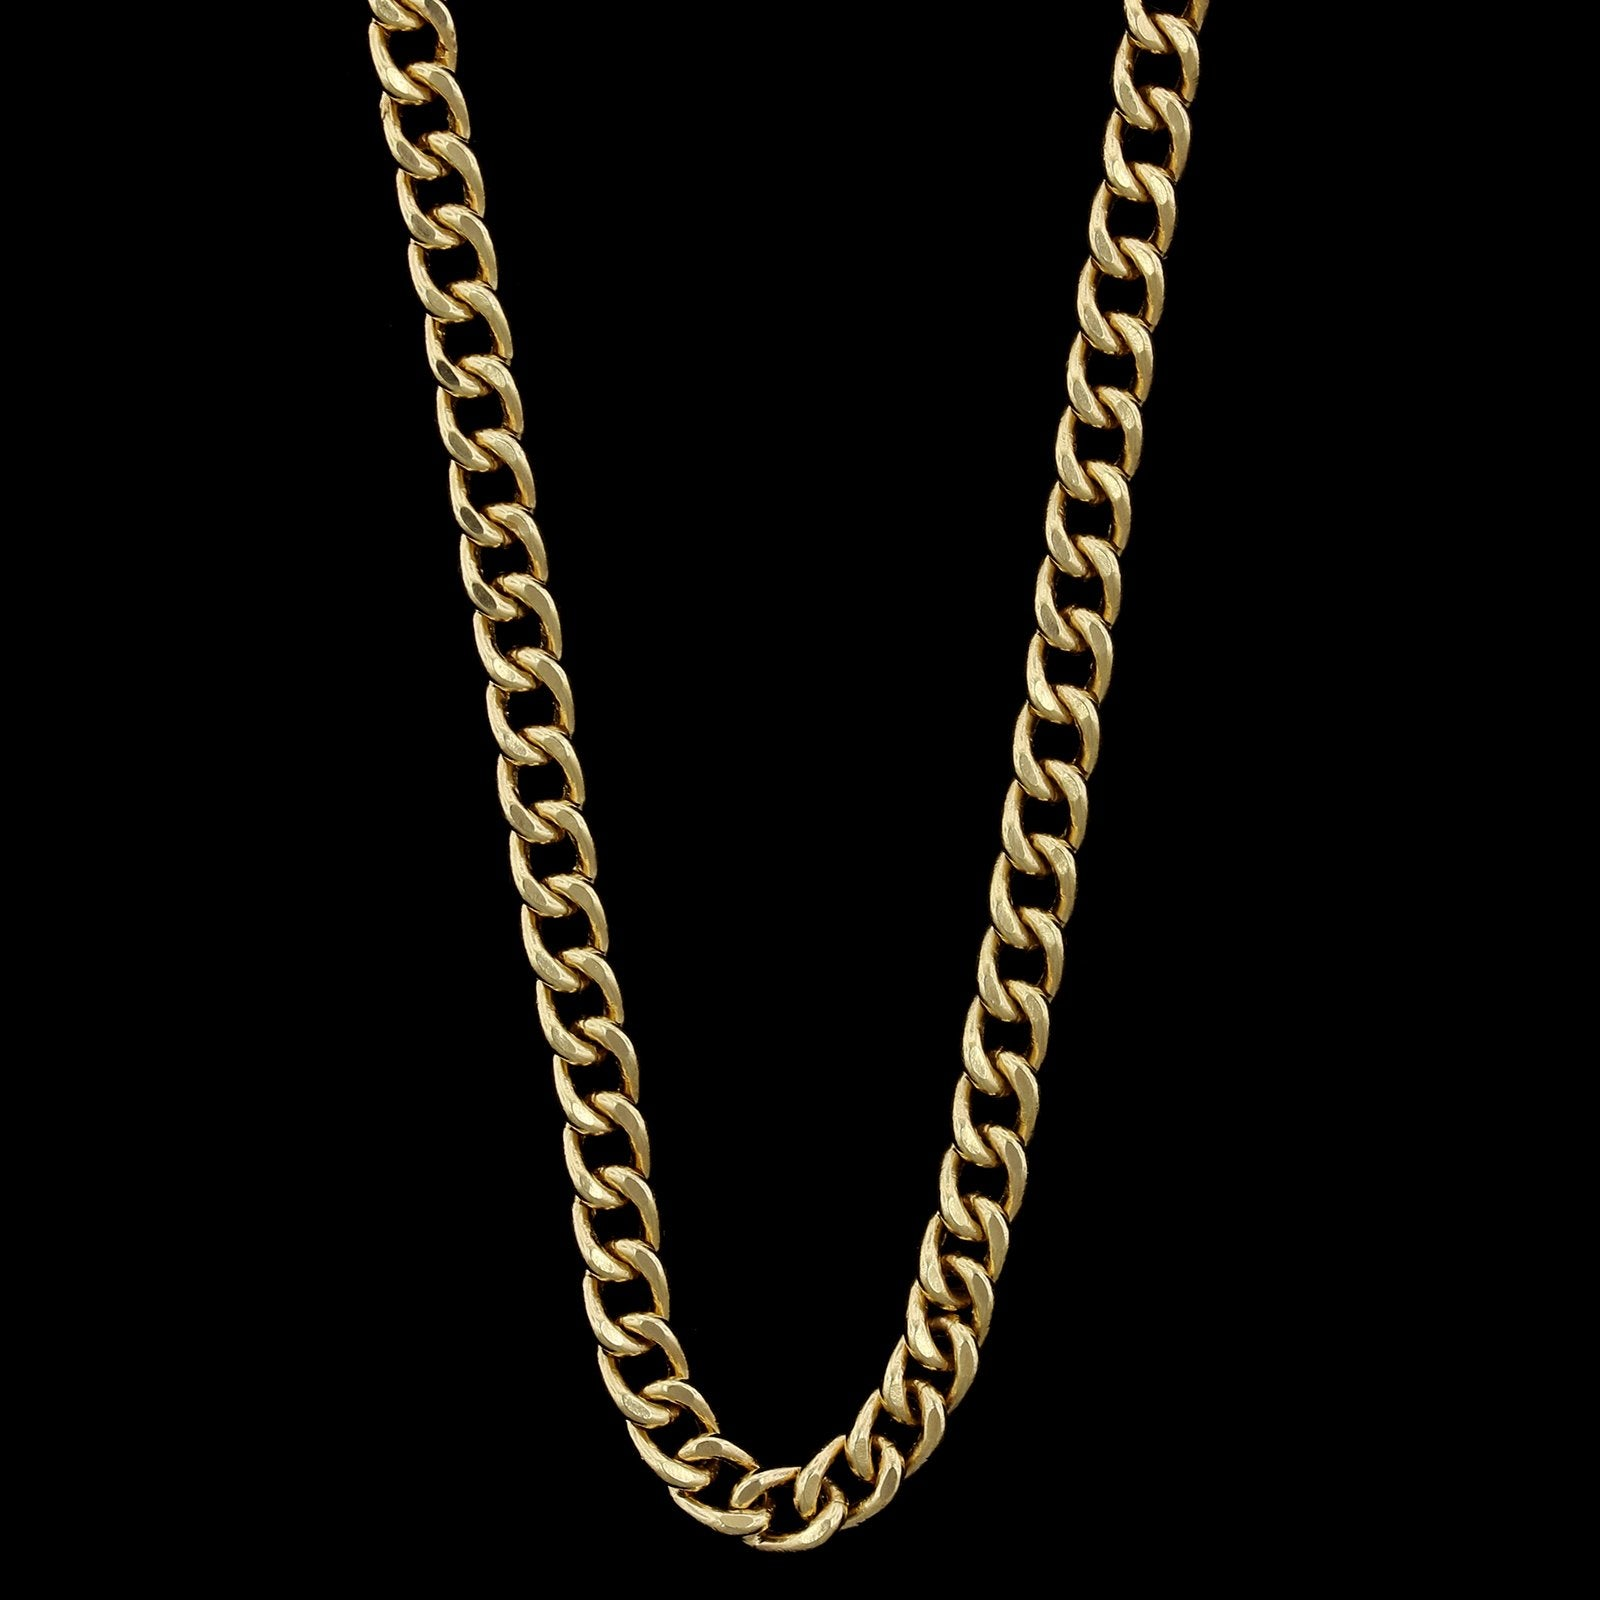 14K Yellow Gold Estate Hollow Curb Link Chain